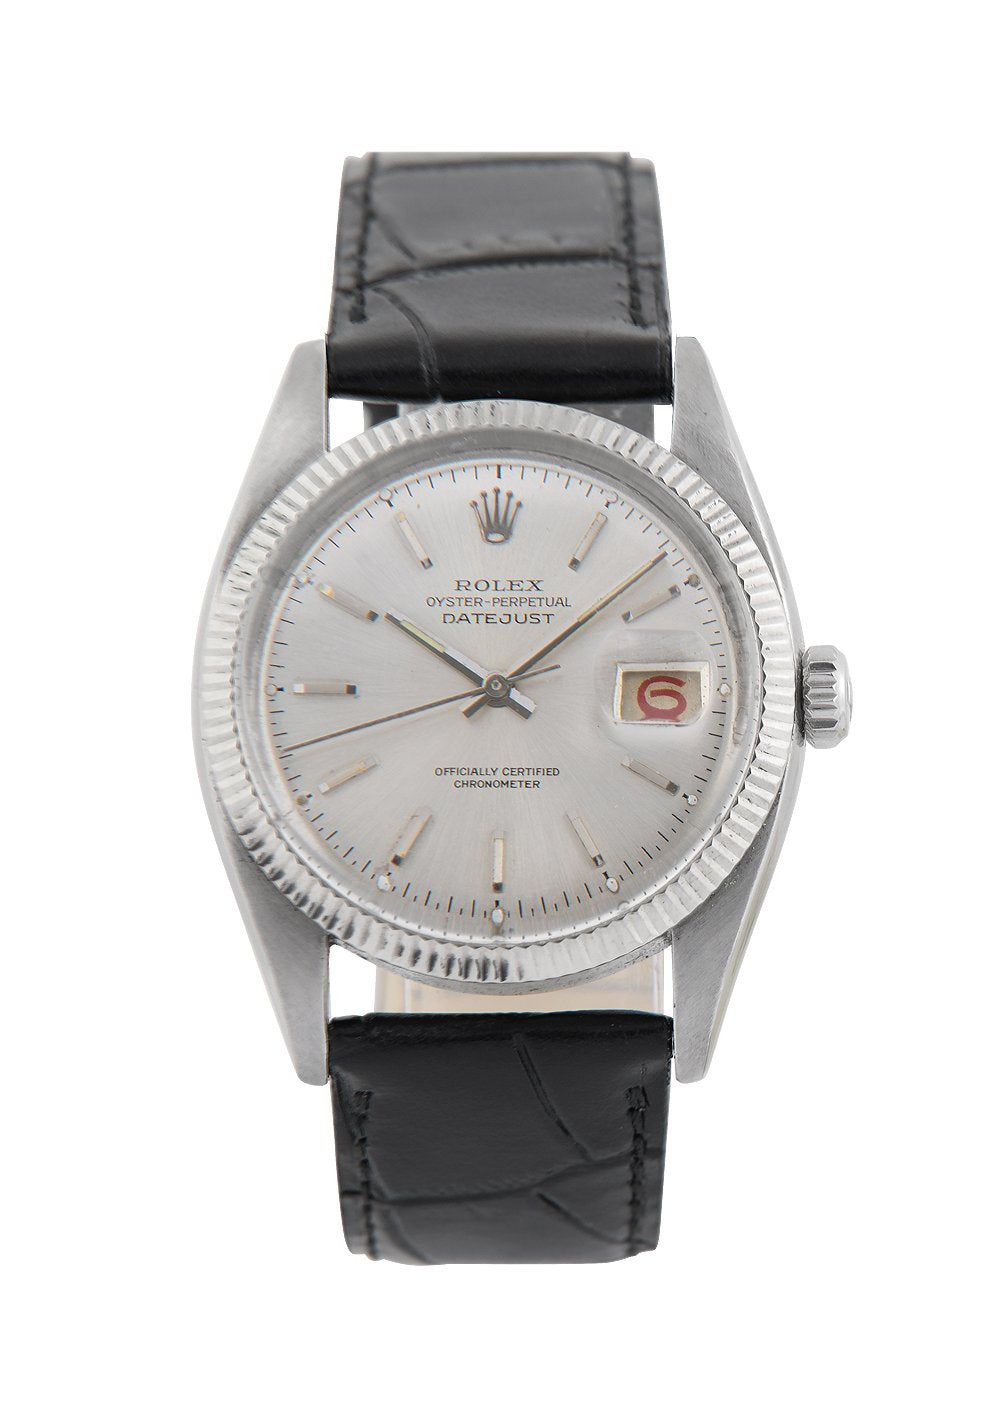 Rolex Vintage Datejust Steel Watch with Silver Roulette Date Wheel 6305